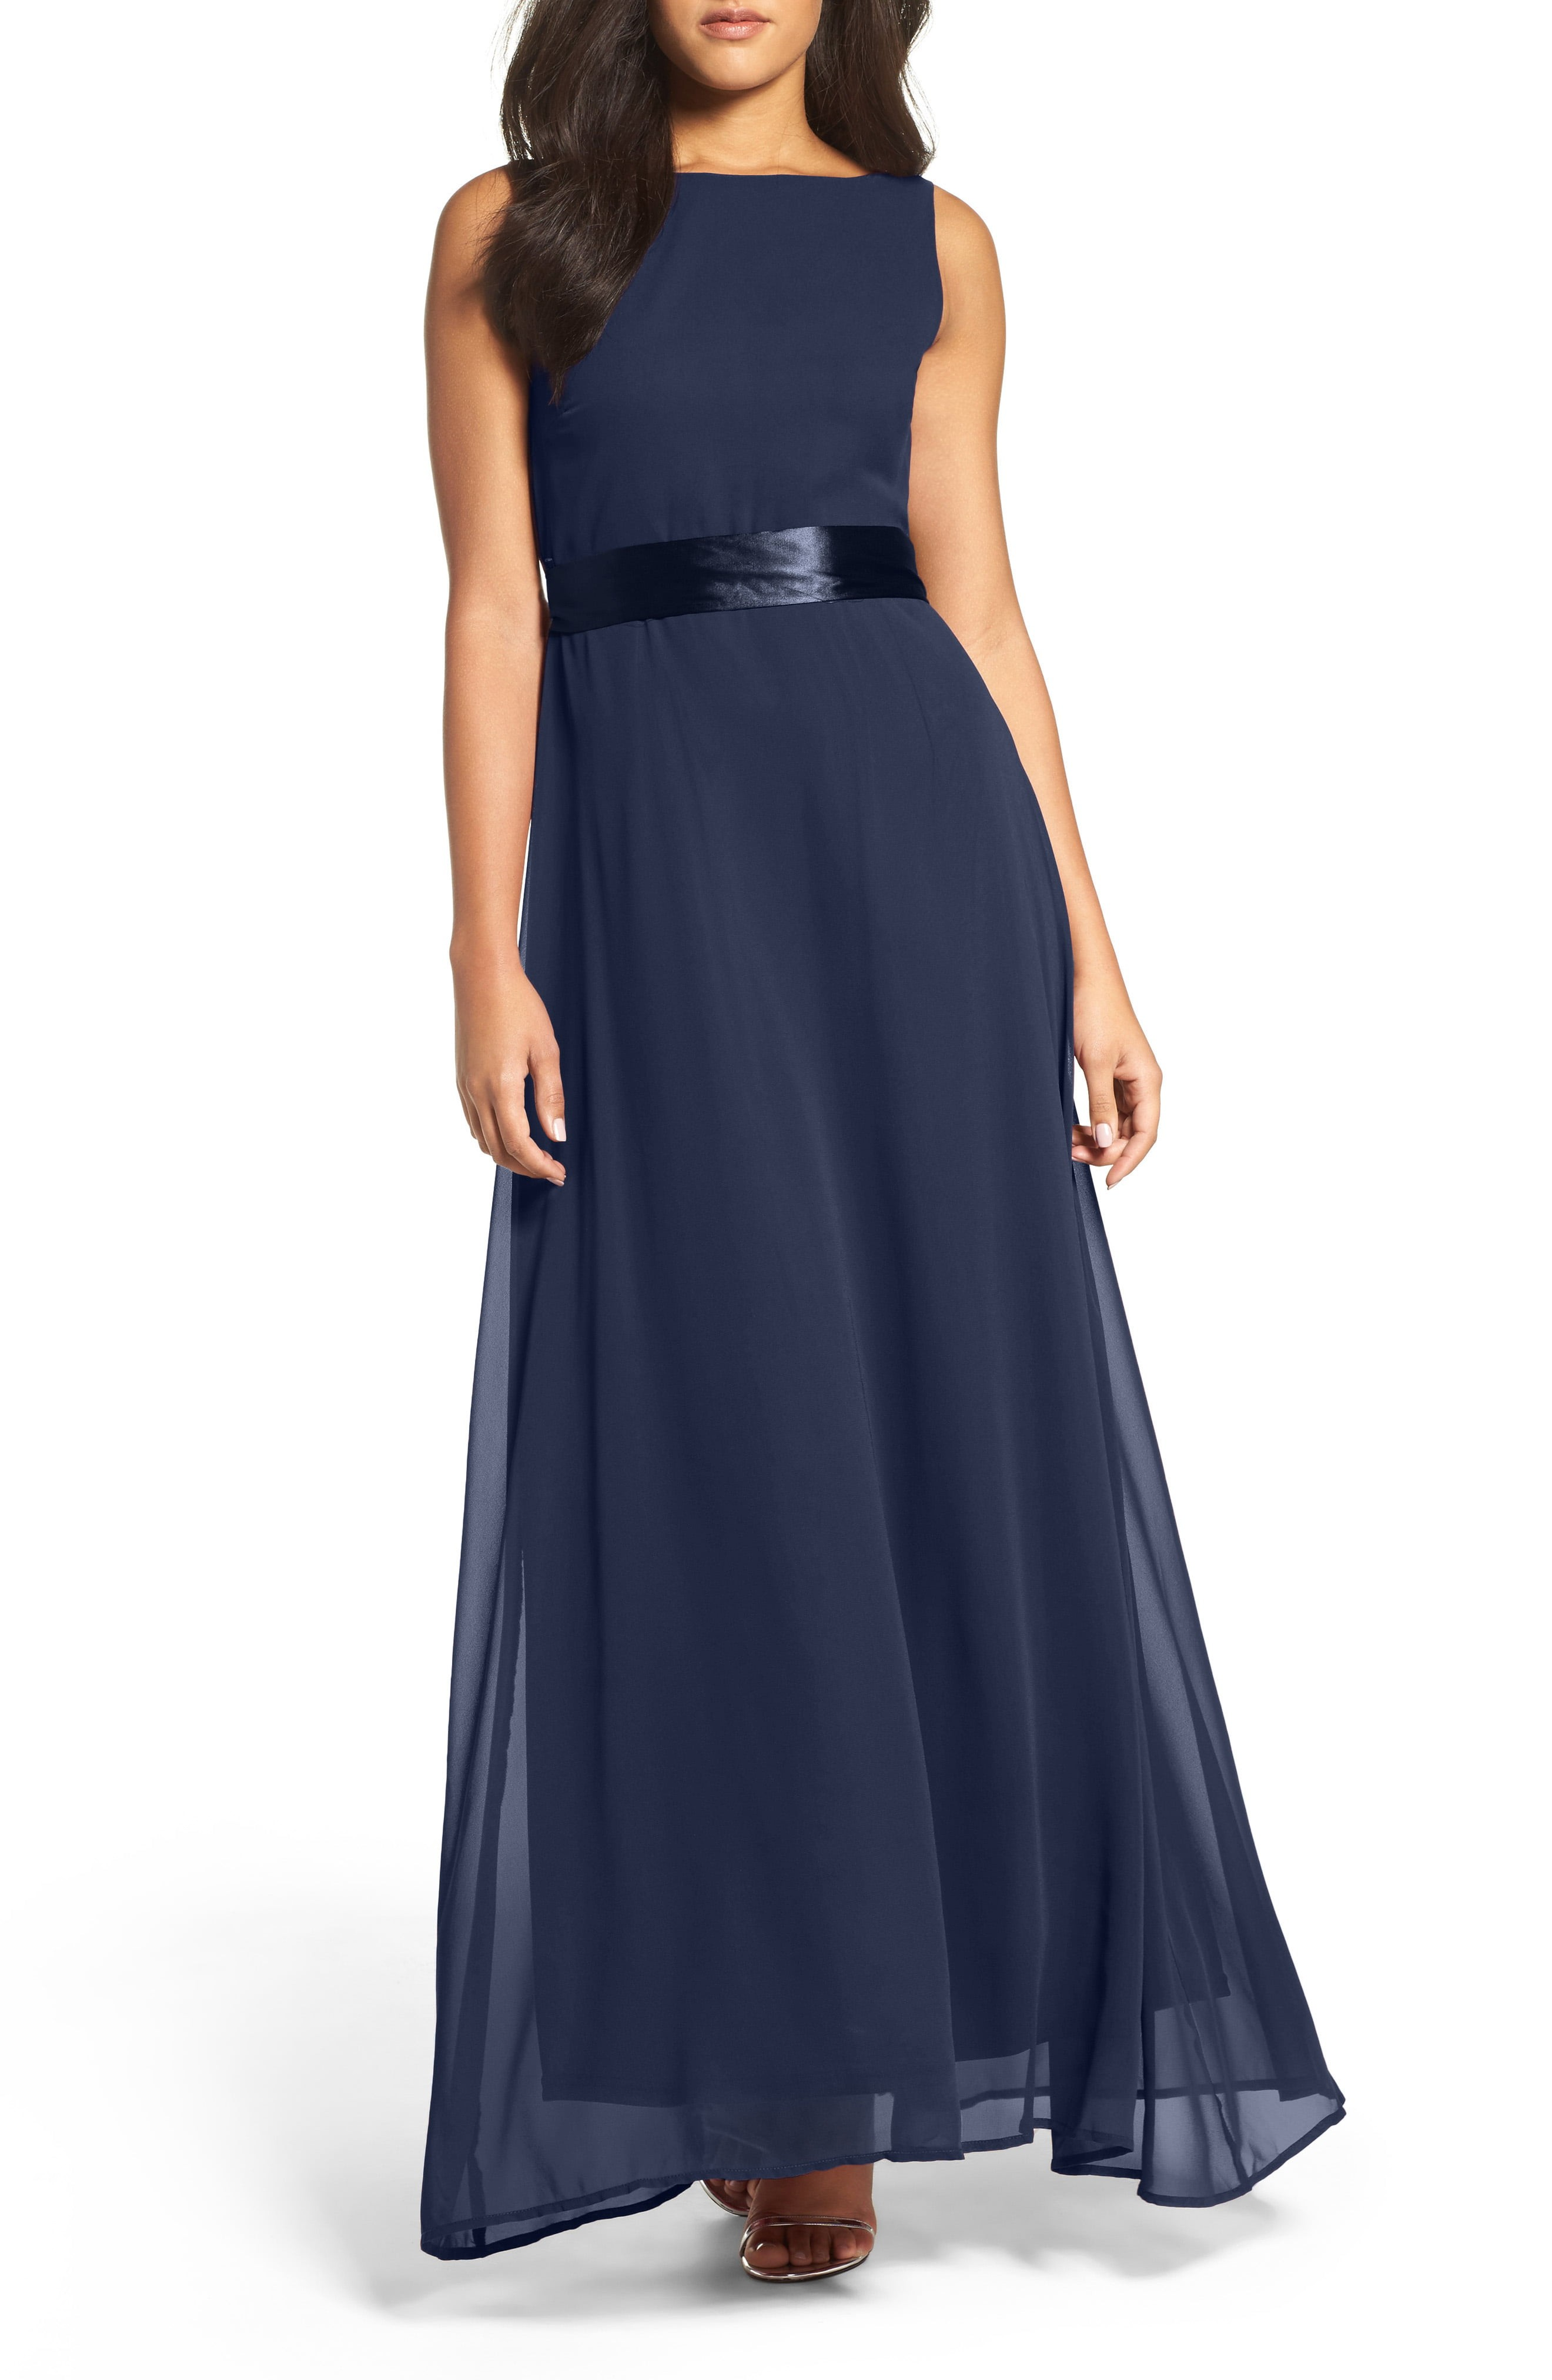 Midnight blue bridesmaid dresses 100 images bespoke lace midnight blue bridesmaid dresses blue bridesmaid dresses navy blue bridesmaid dresses ombrellifo Images